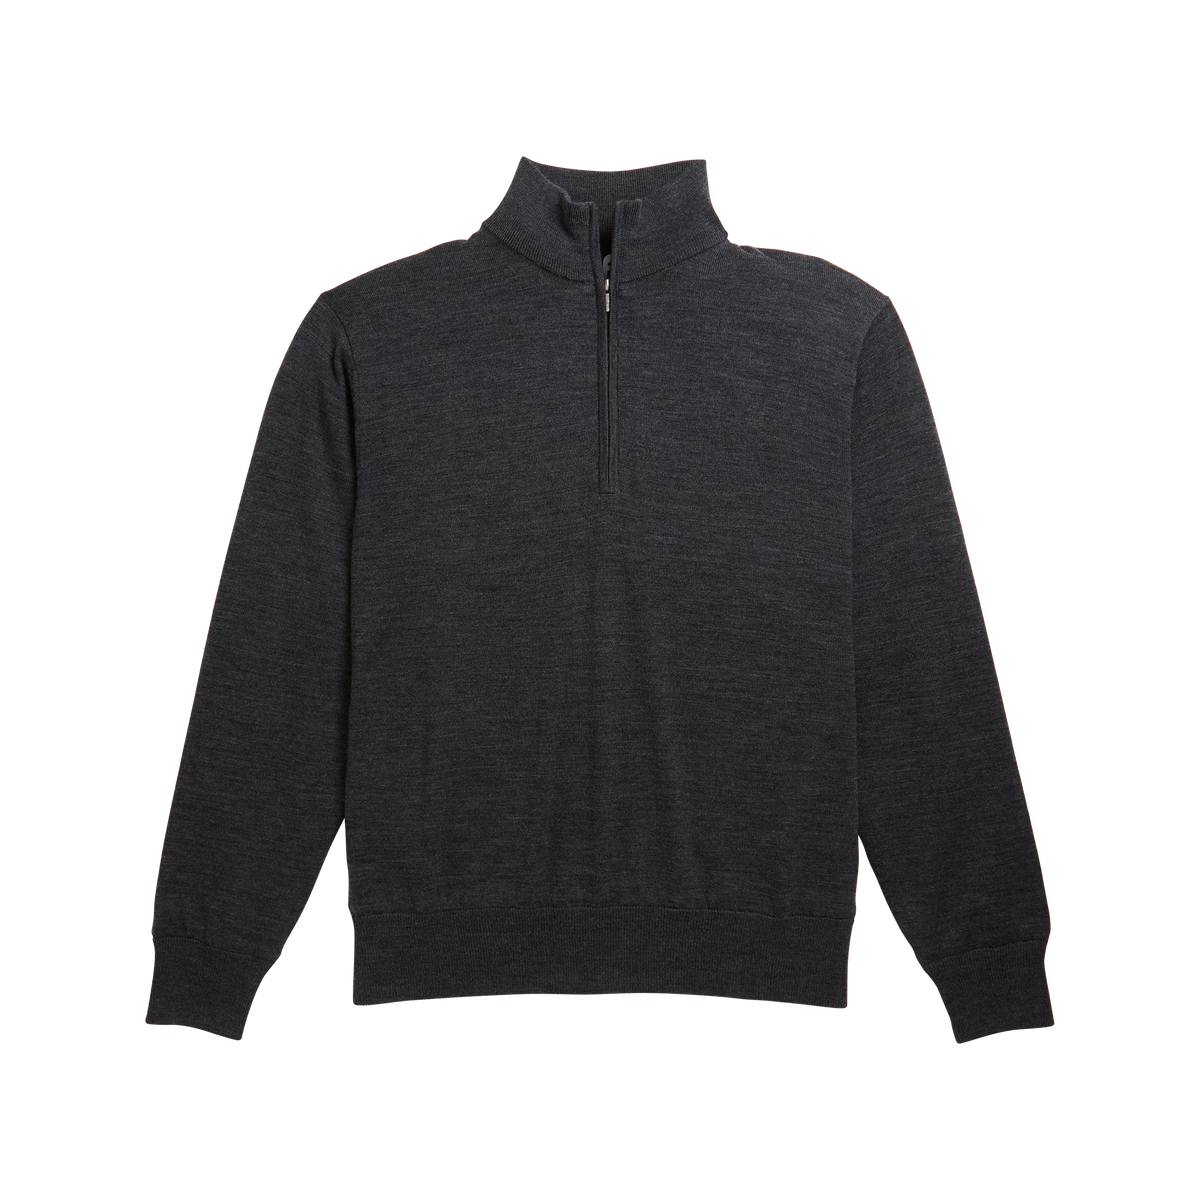 Lined Performance Sweater